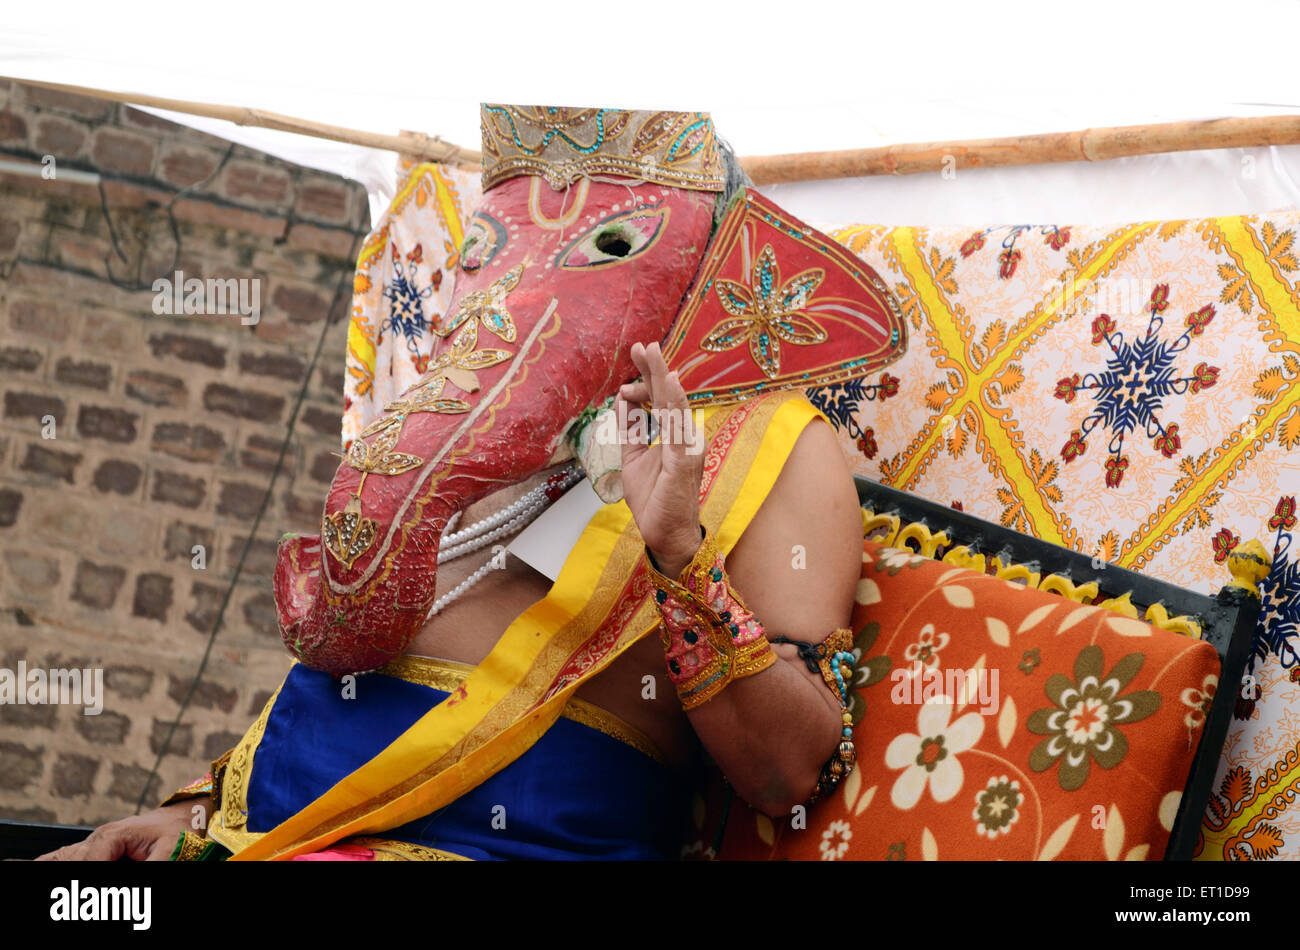 A man in disguise of Ganesh Ji in  religious procession of Pipa Jayanti Jodhpur Rajasthan India - Stock Image